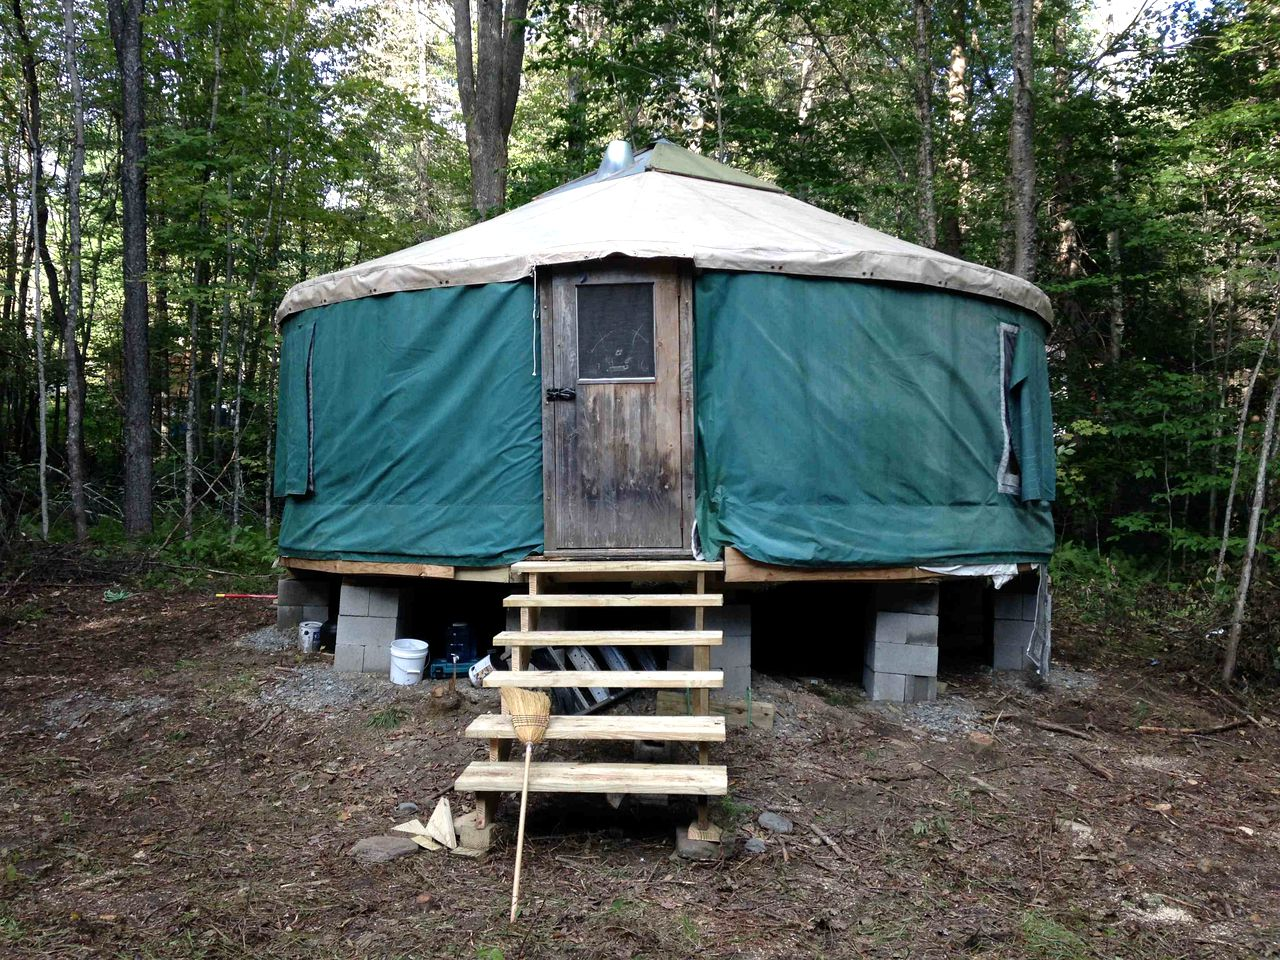 Luxury yurt camping rental in Vermont